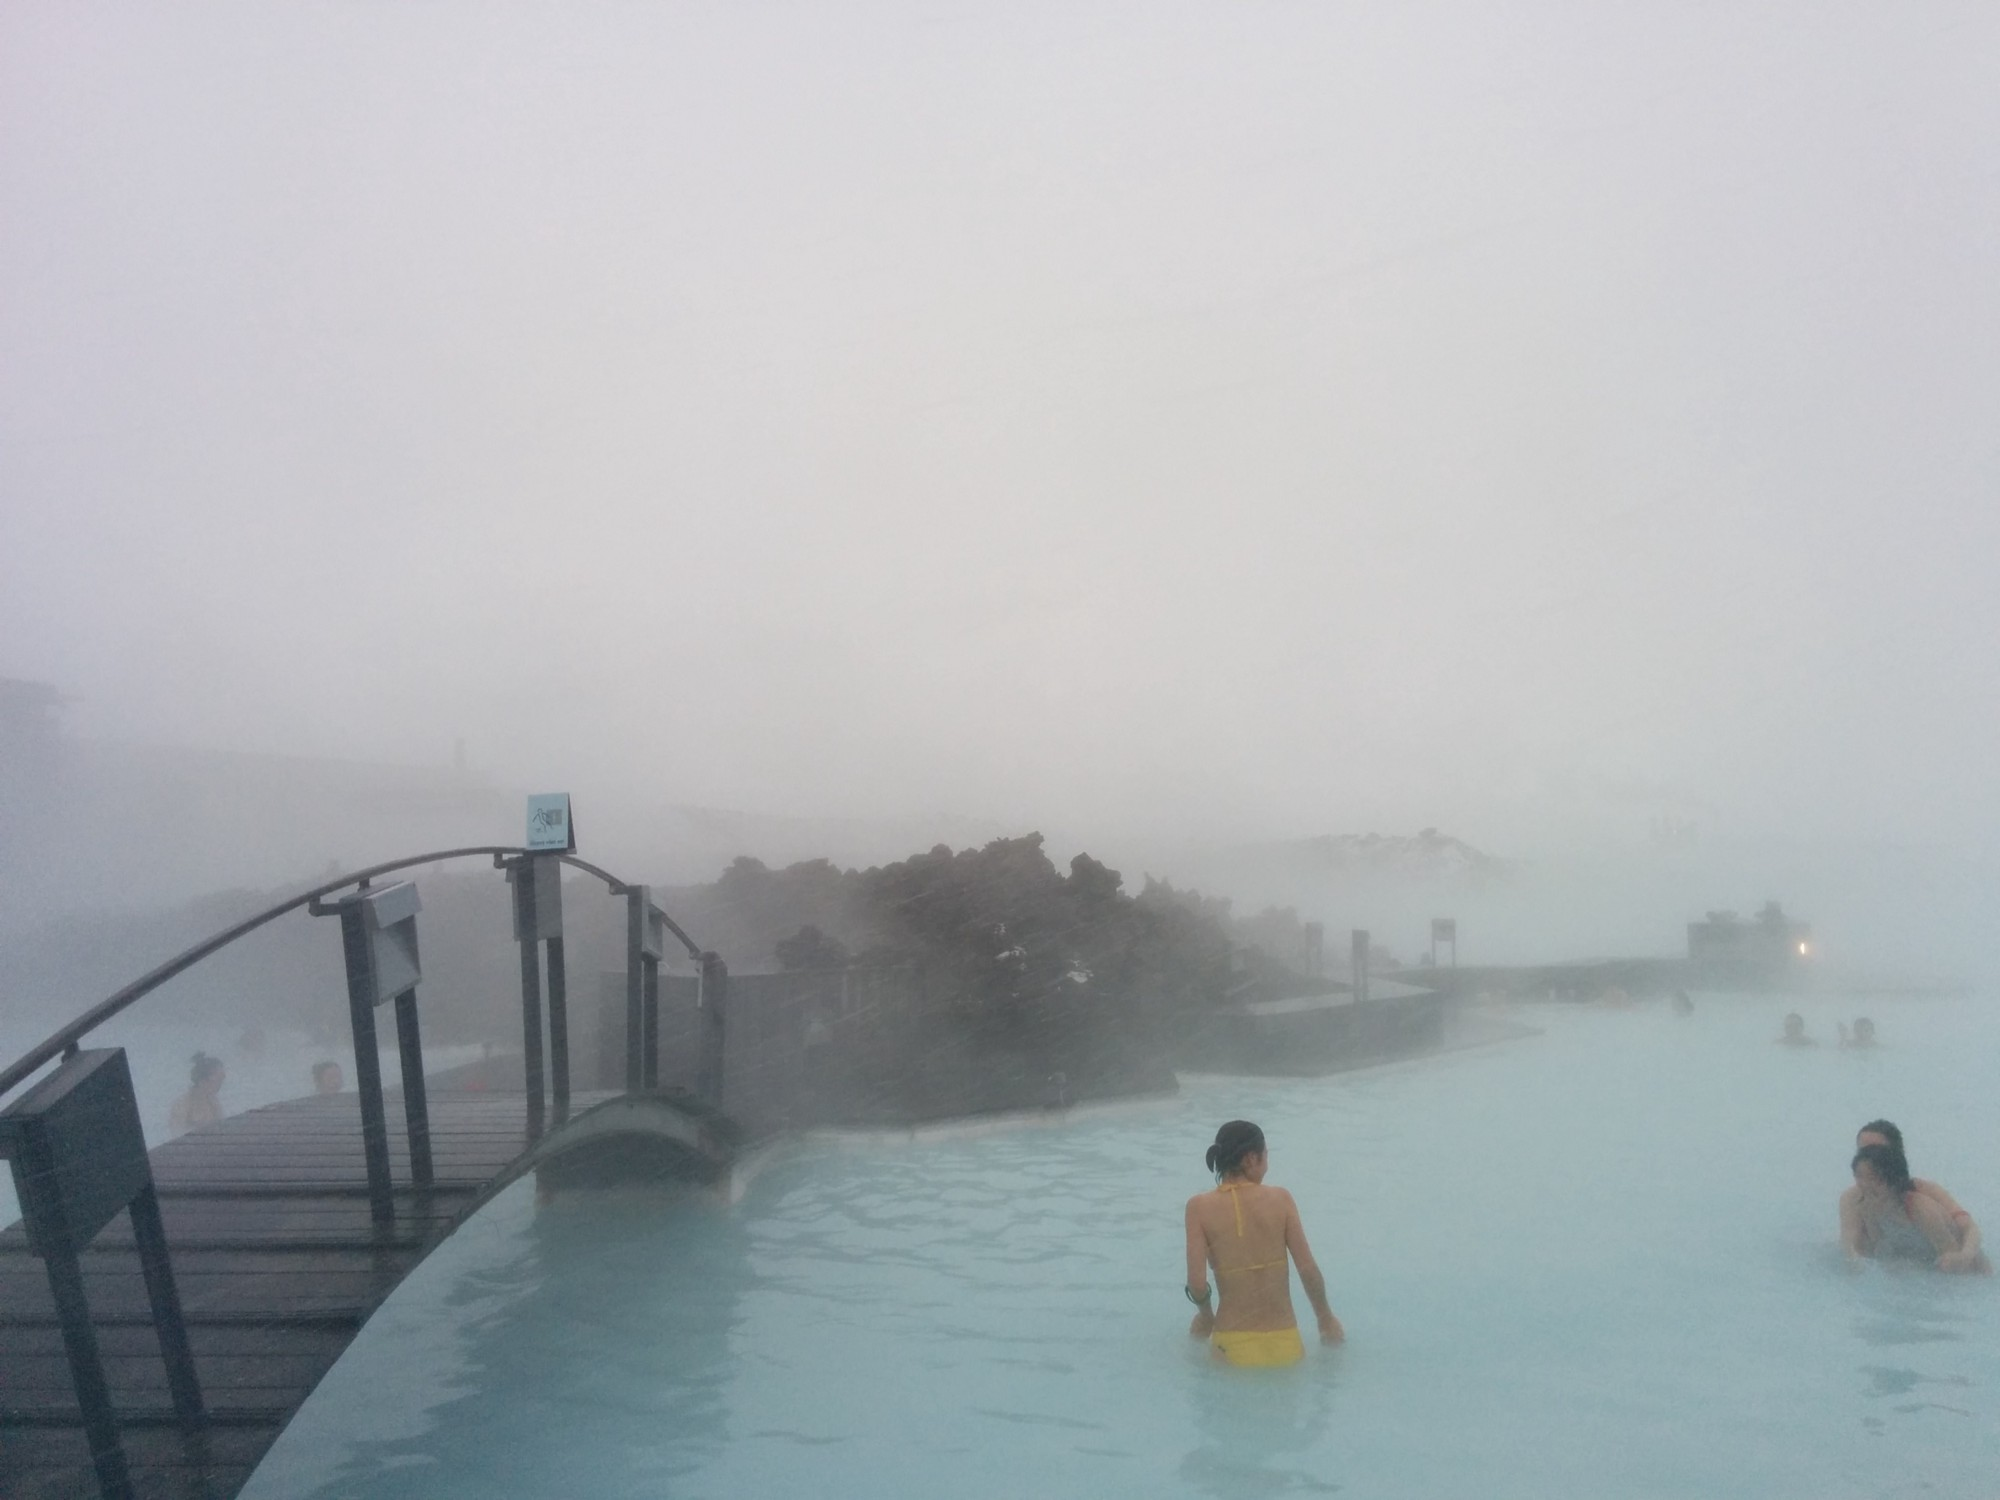 Iceland: White Christmas in the Blue Lagoon – Justin Wood – Medium